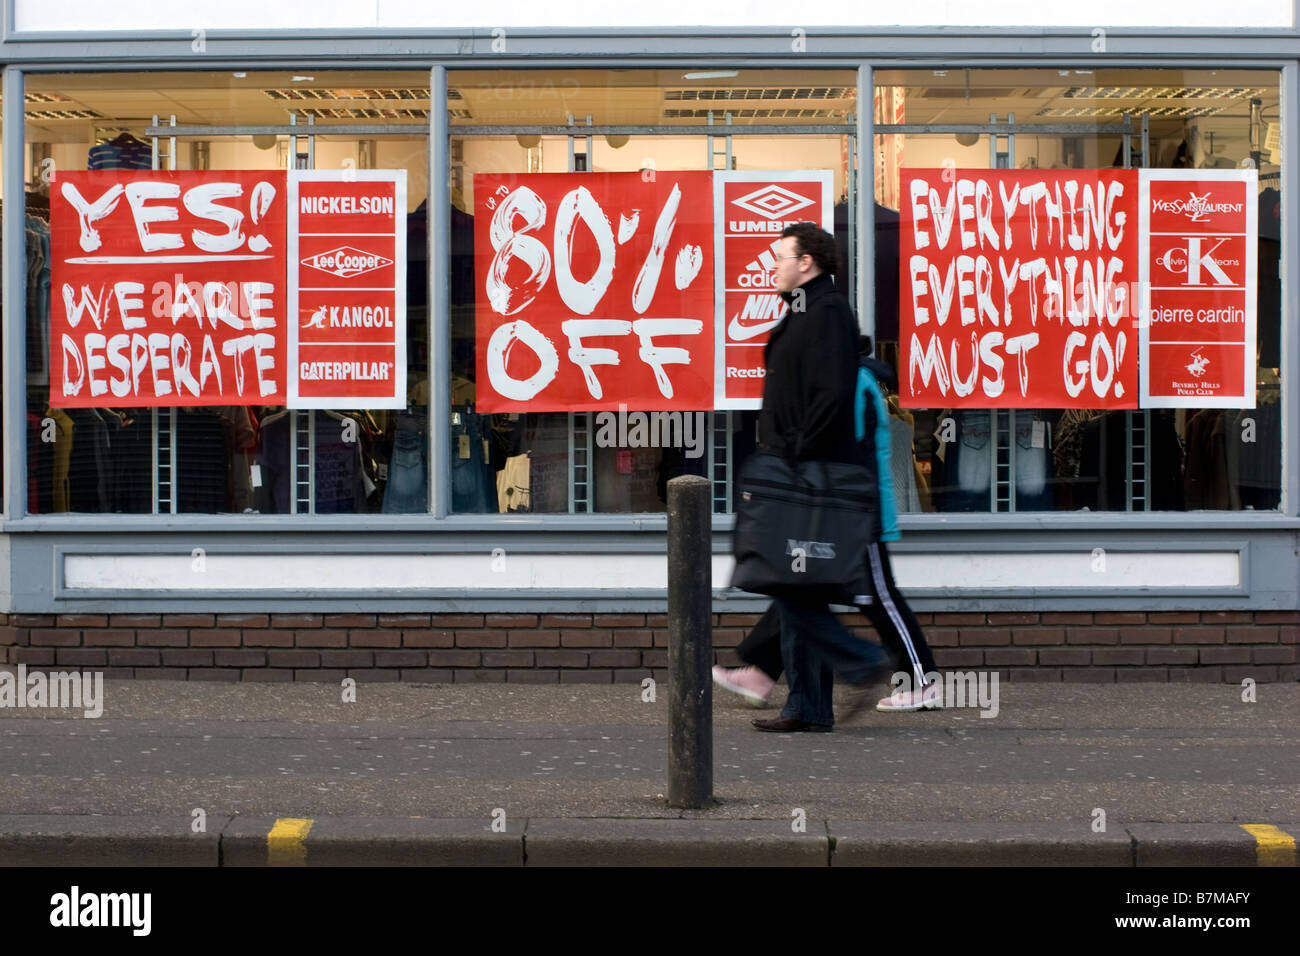 credit crunch store with 80 per cent off signs and we are desperate signs in shop window - Stock Image